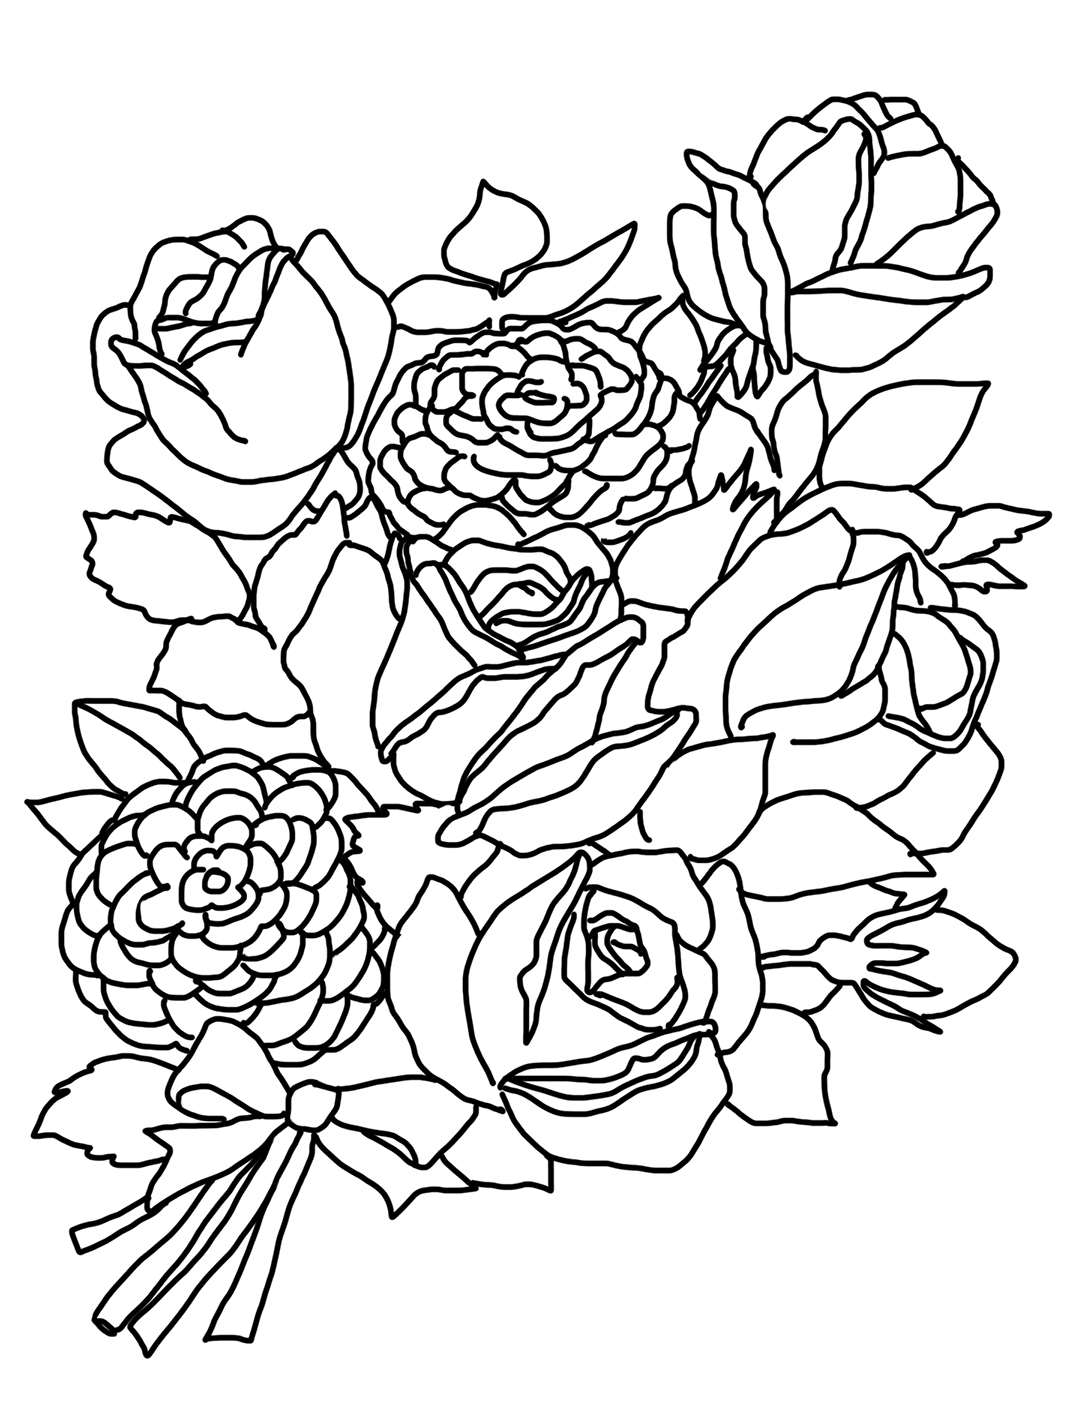 coloring page rose rose with heart drawing at getdrawings free download coloring page rose